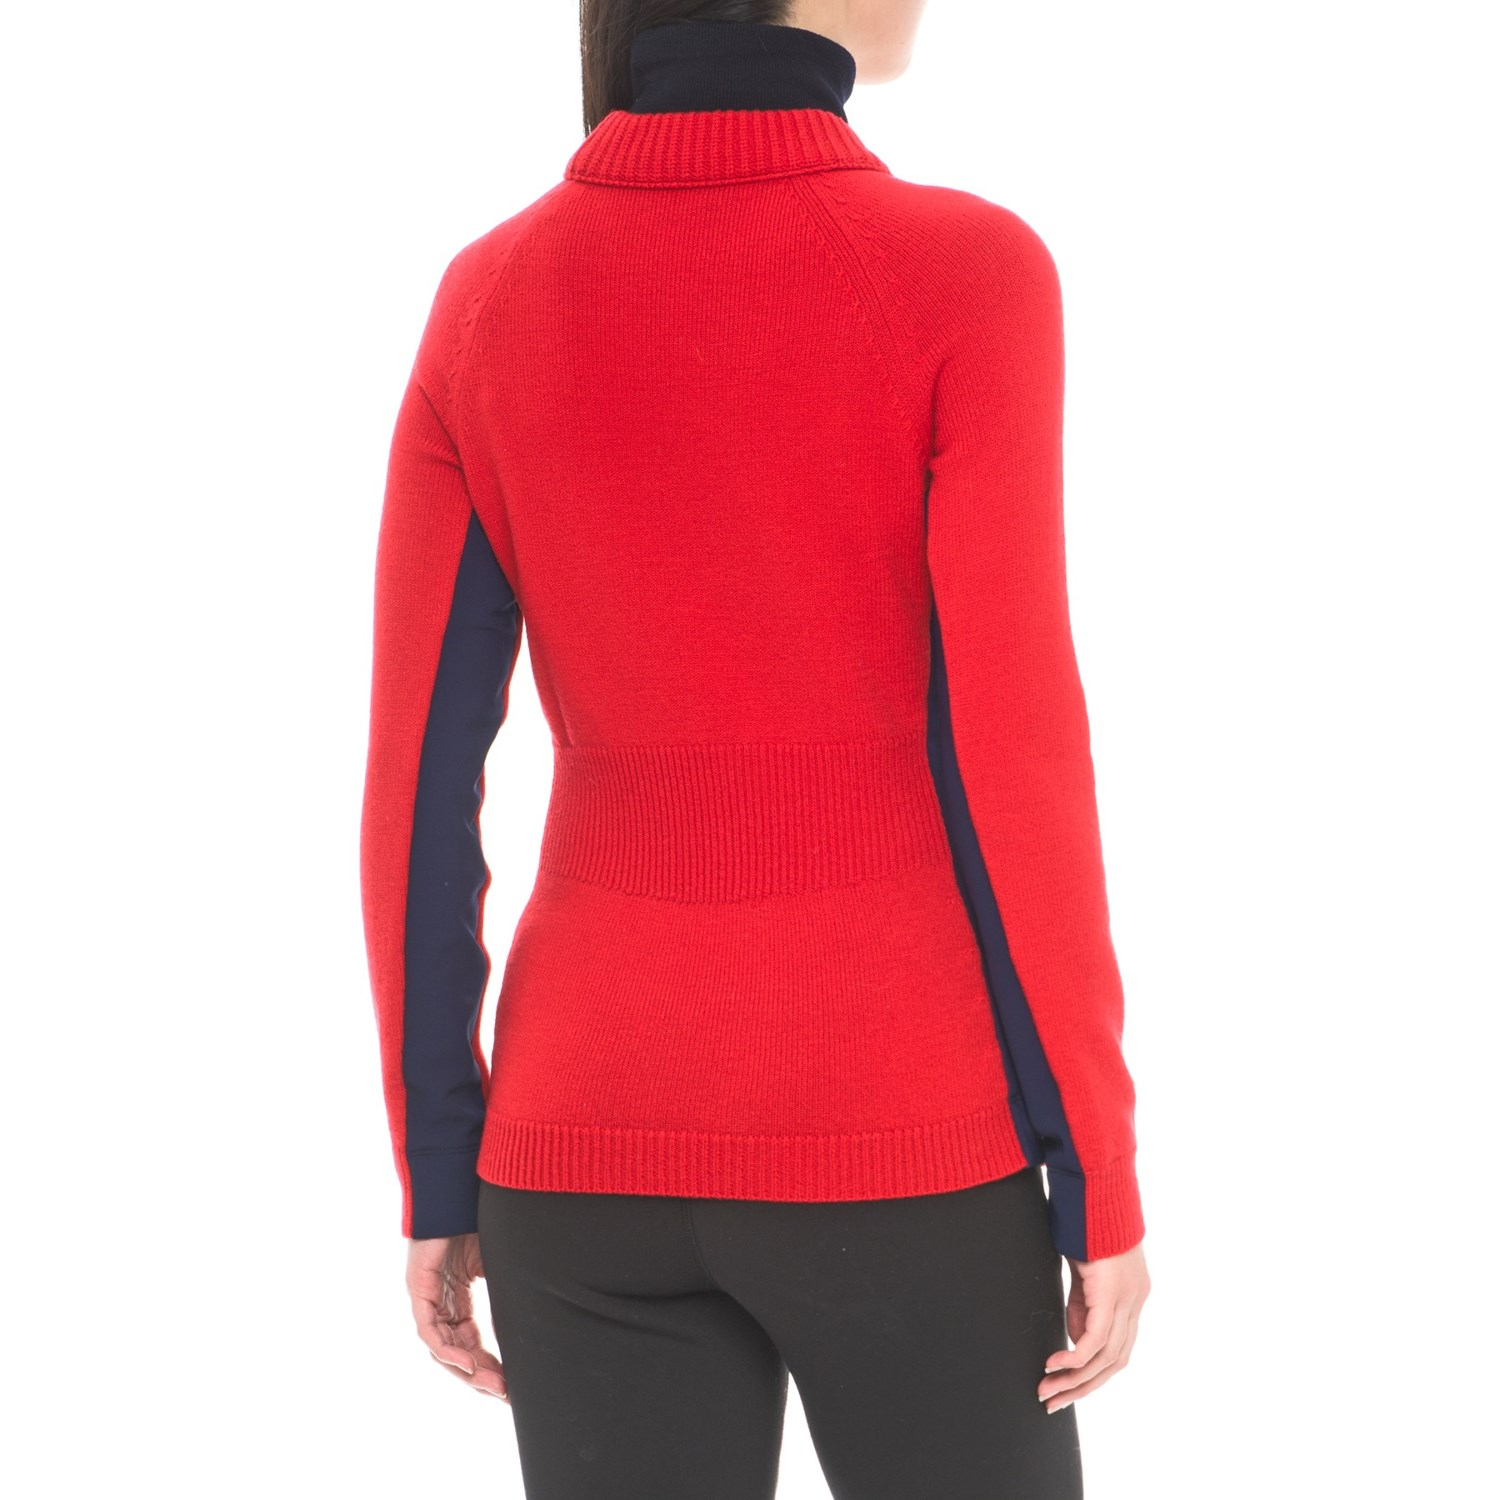 Moncler Grenoble Grenoble Made in Italy Turtleneck Sweater - Wool (For Women)